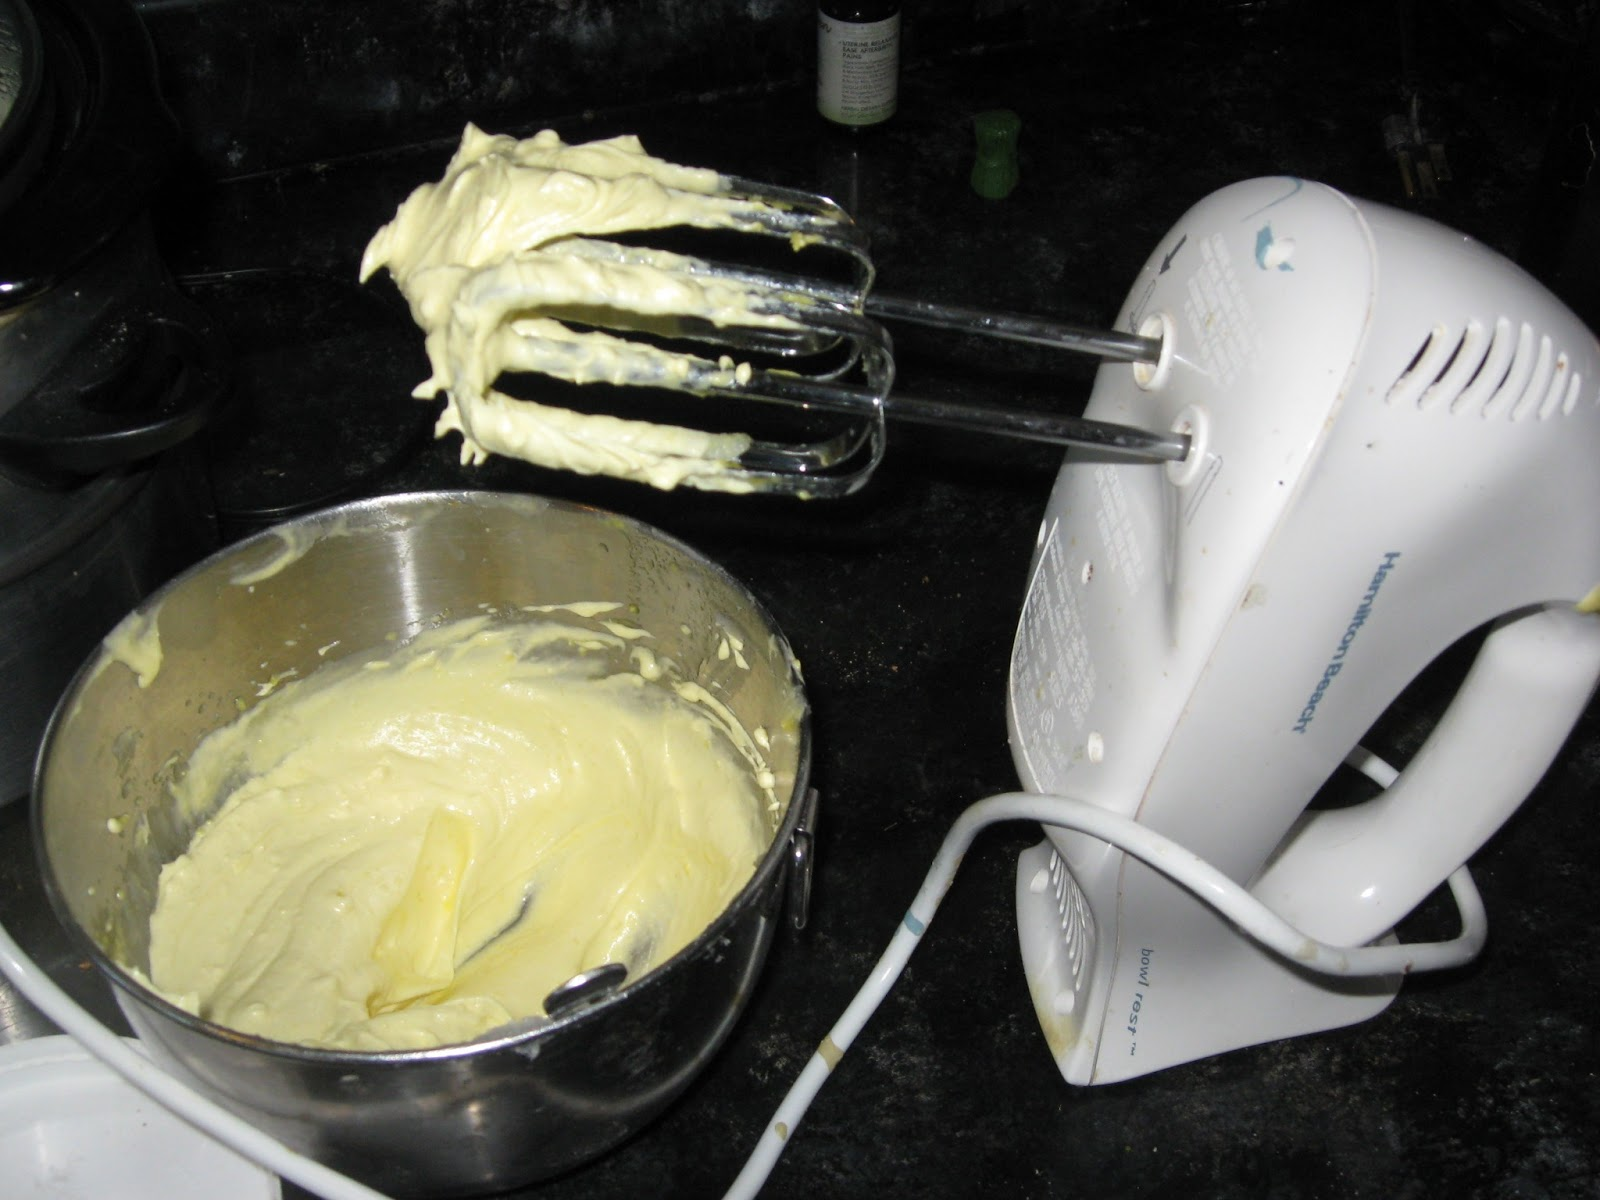 1 cup butter to oil